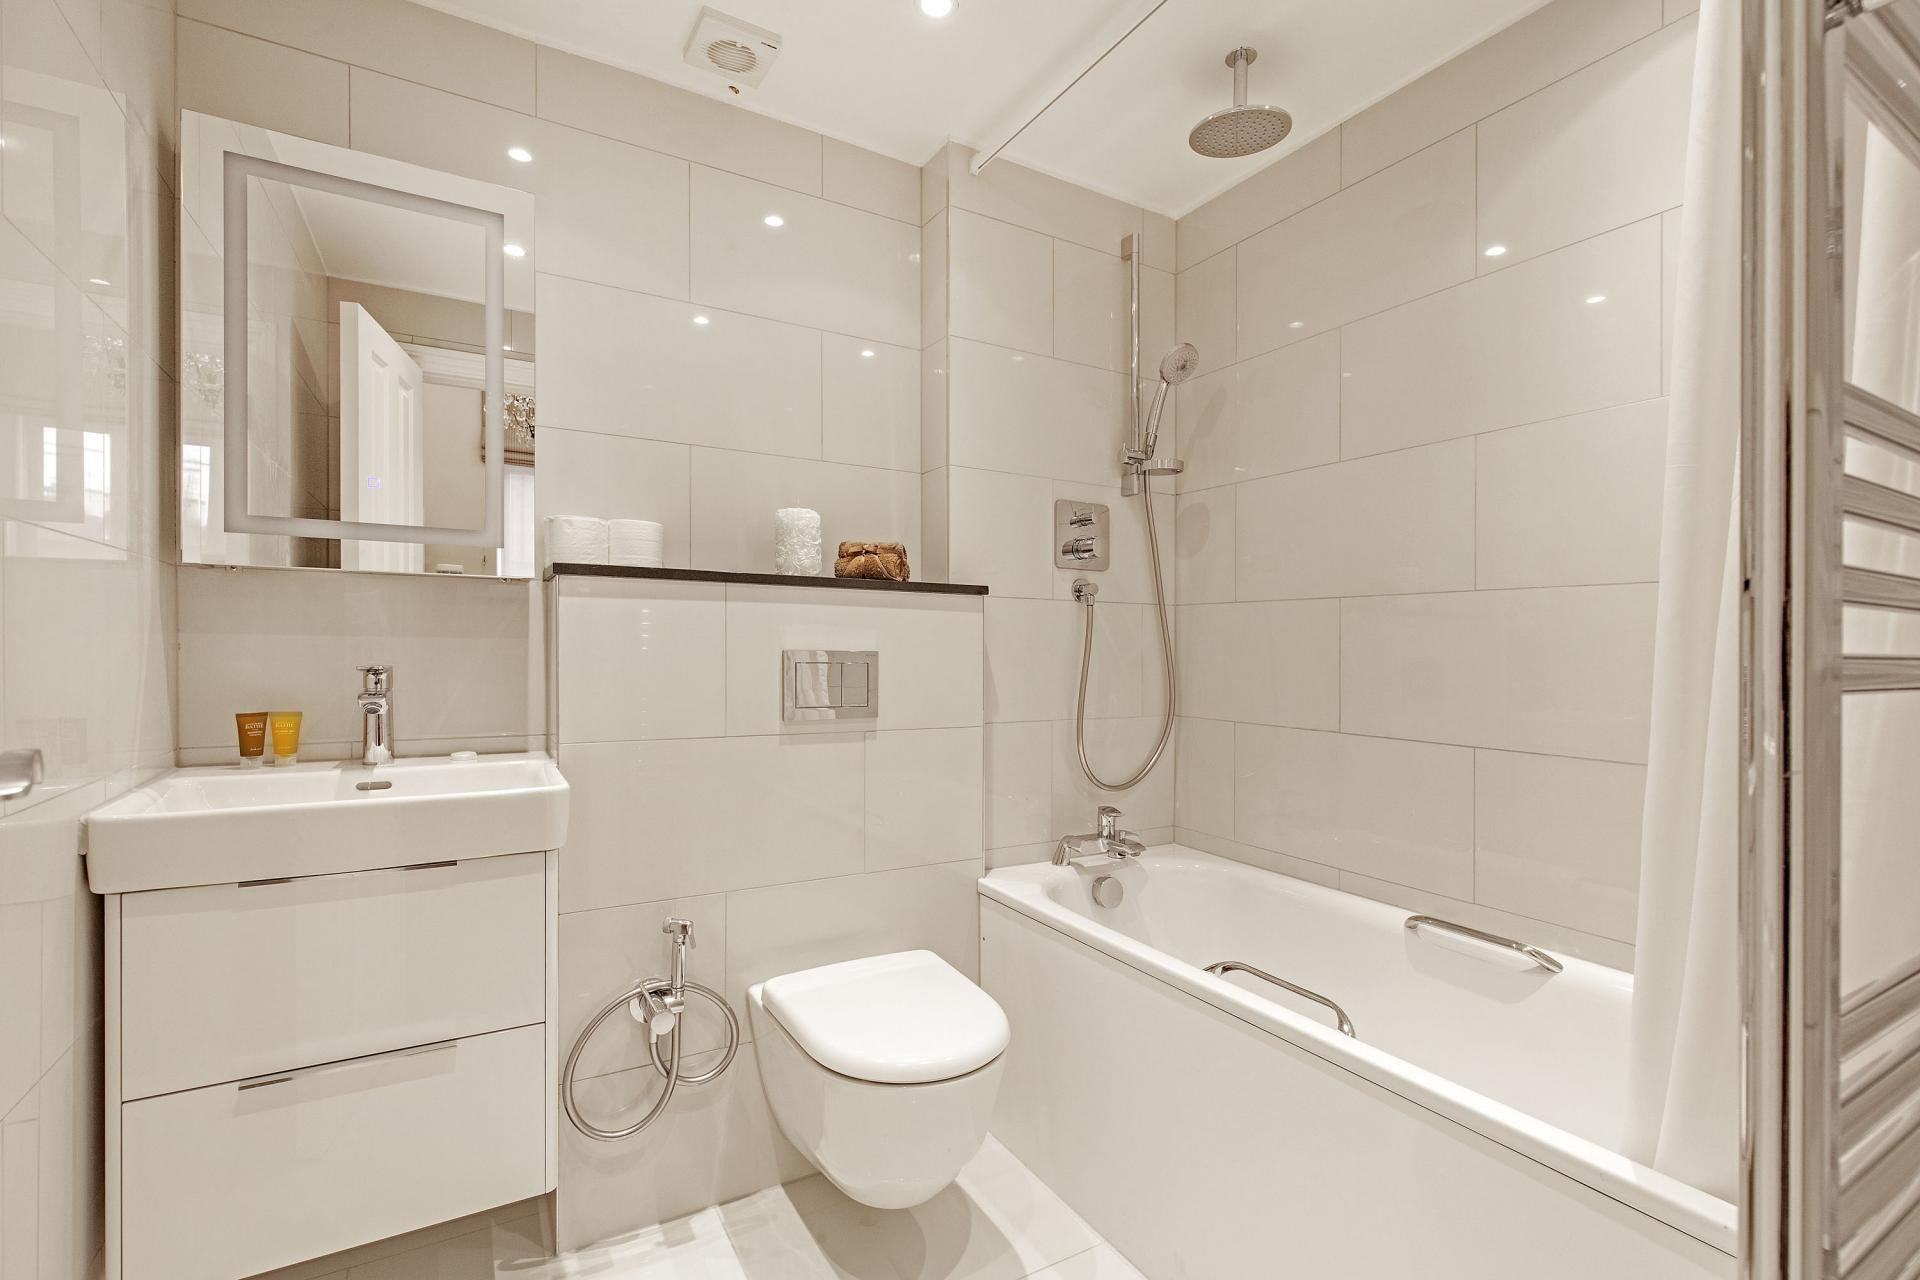 Bathroom at Chesham Court, Belgravia, London - Citybase Apartments